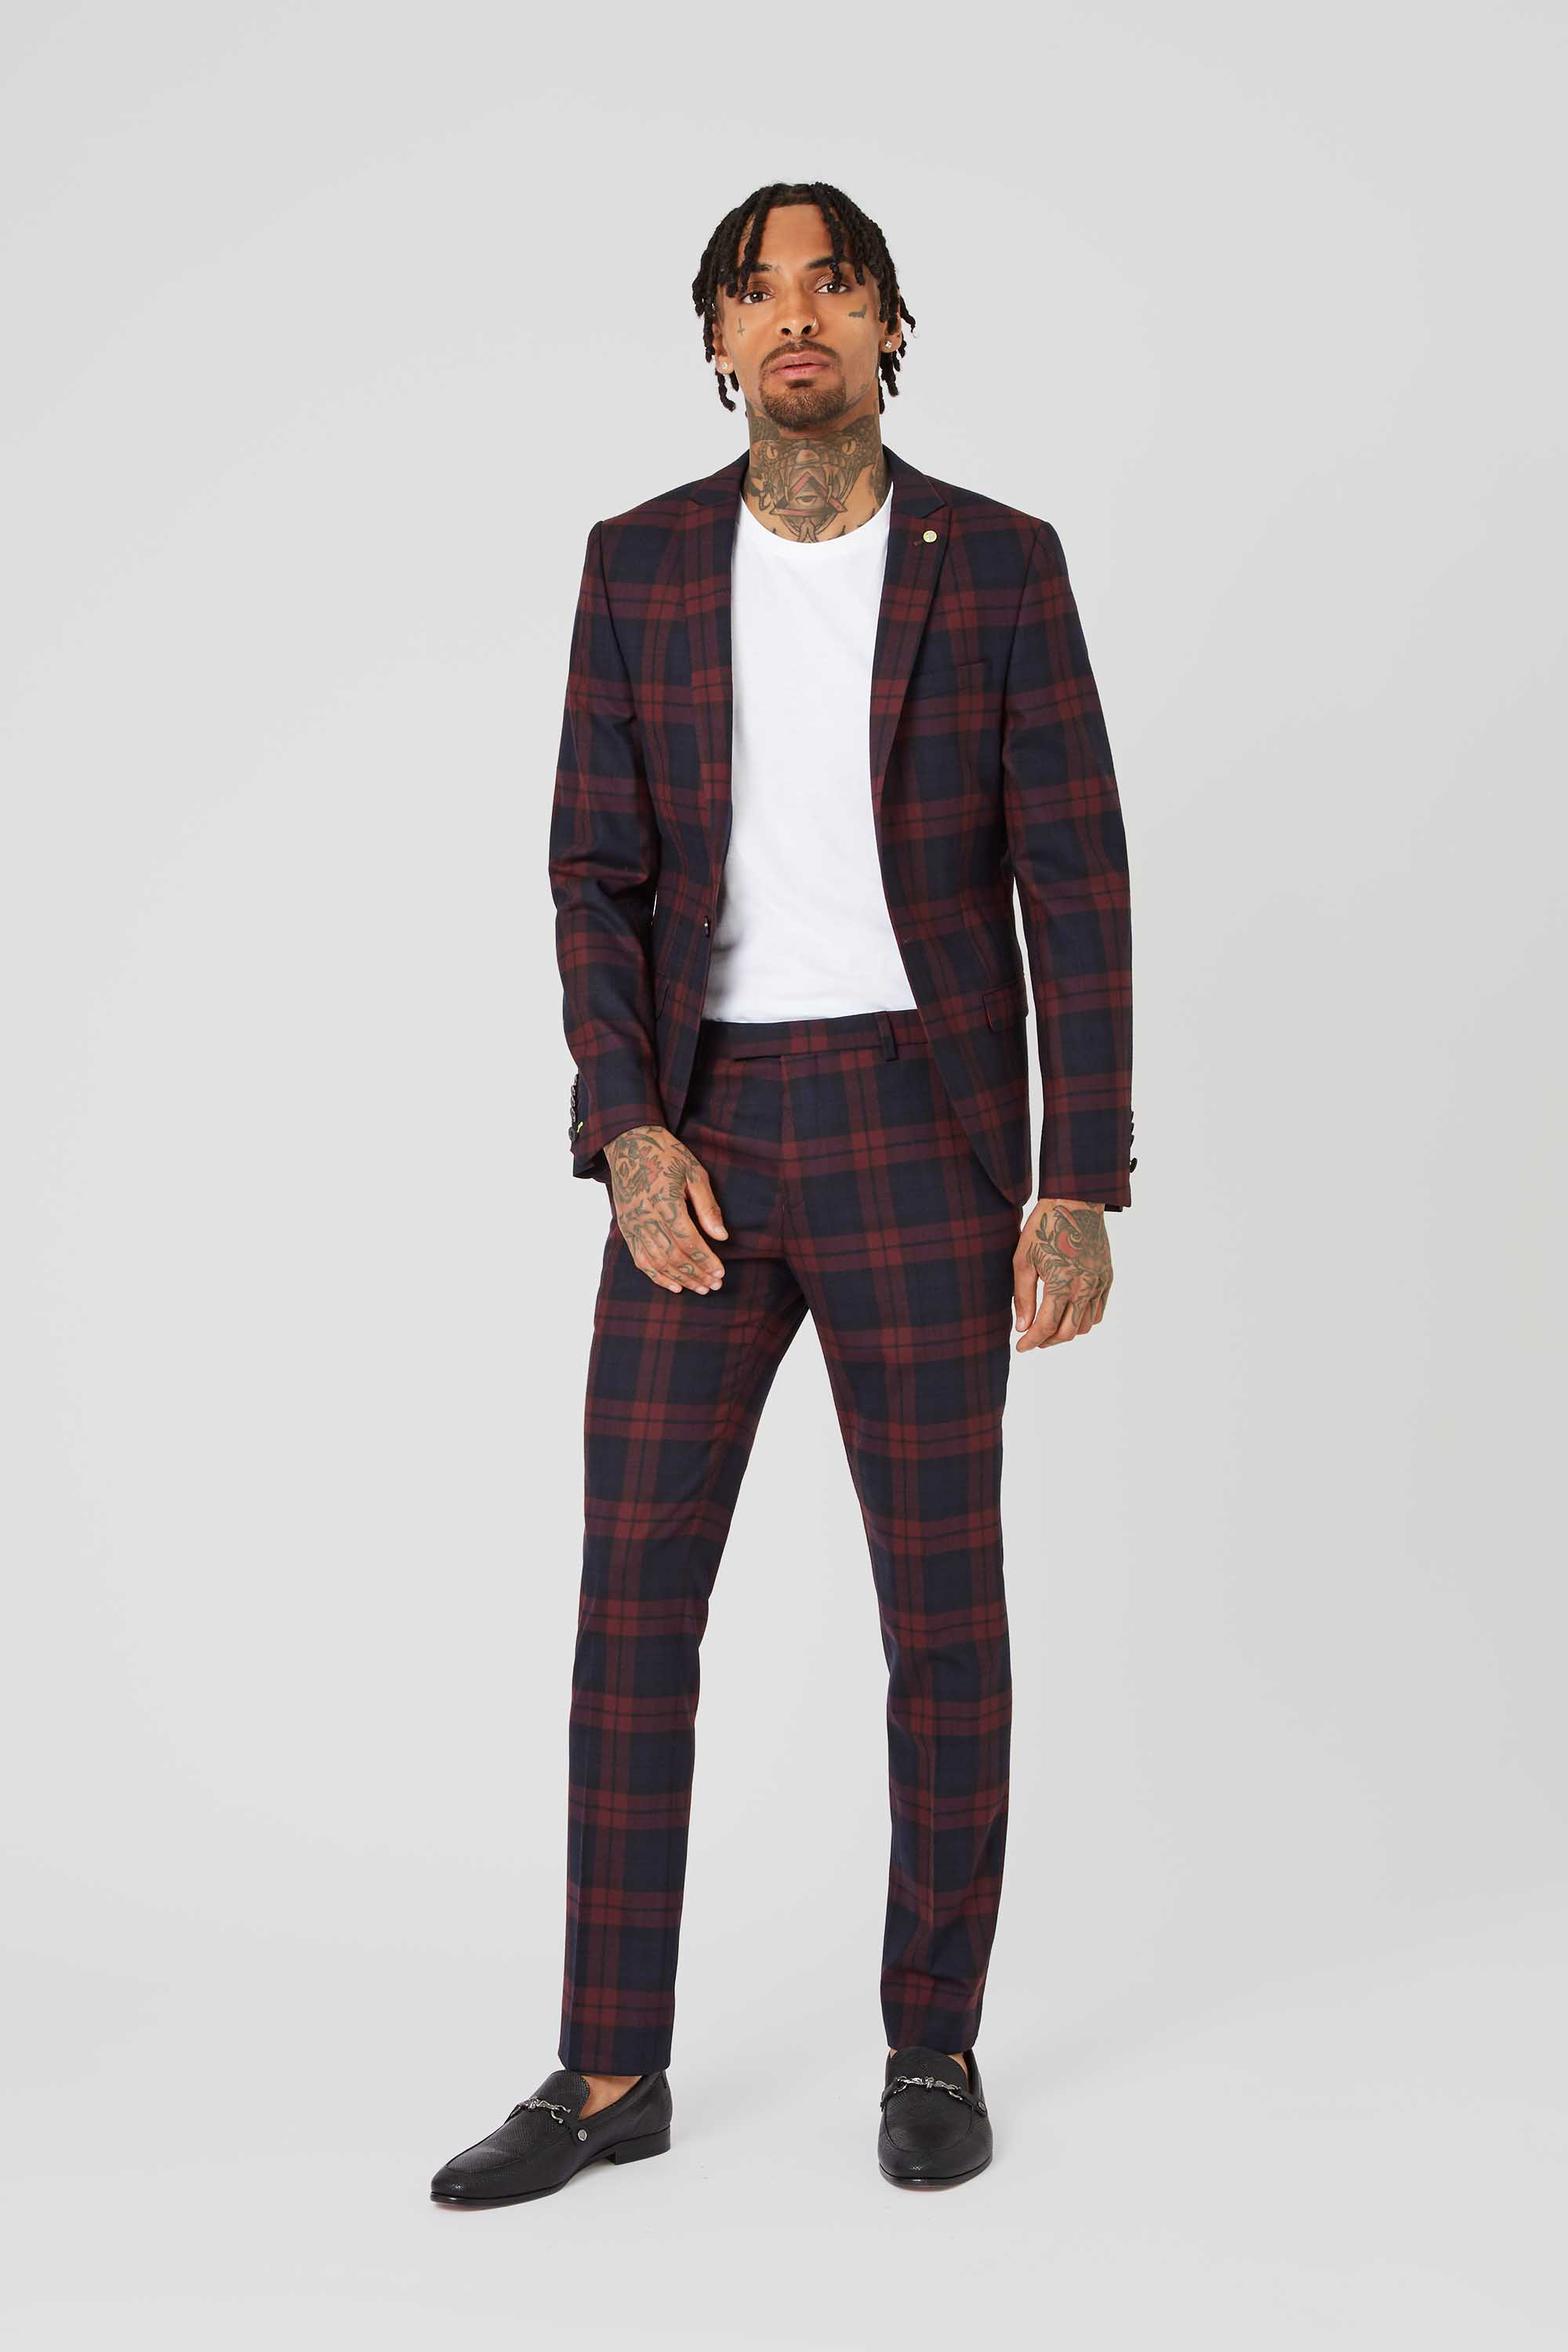 GINGER SKINNY FIT JACKET IN BURGUNDY TARTAN